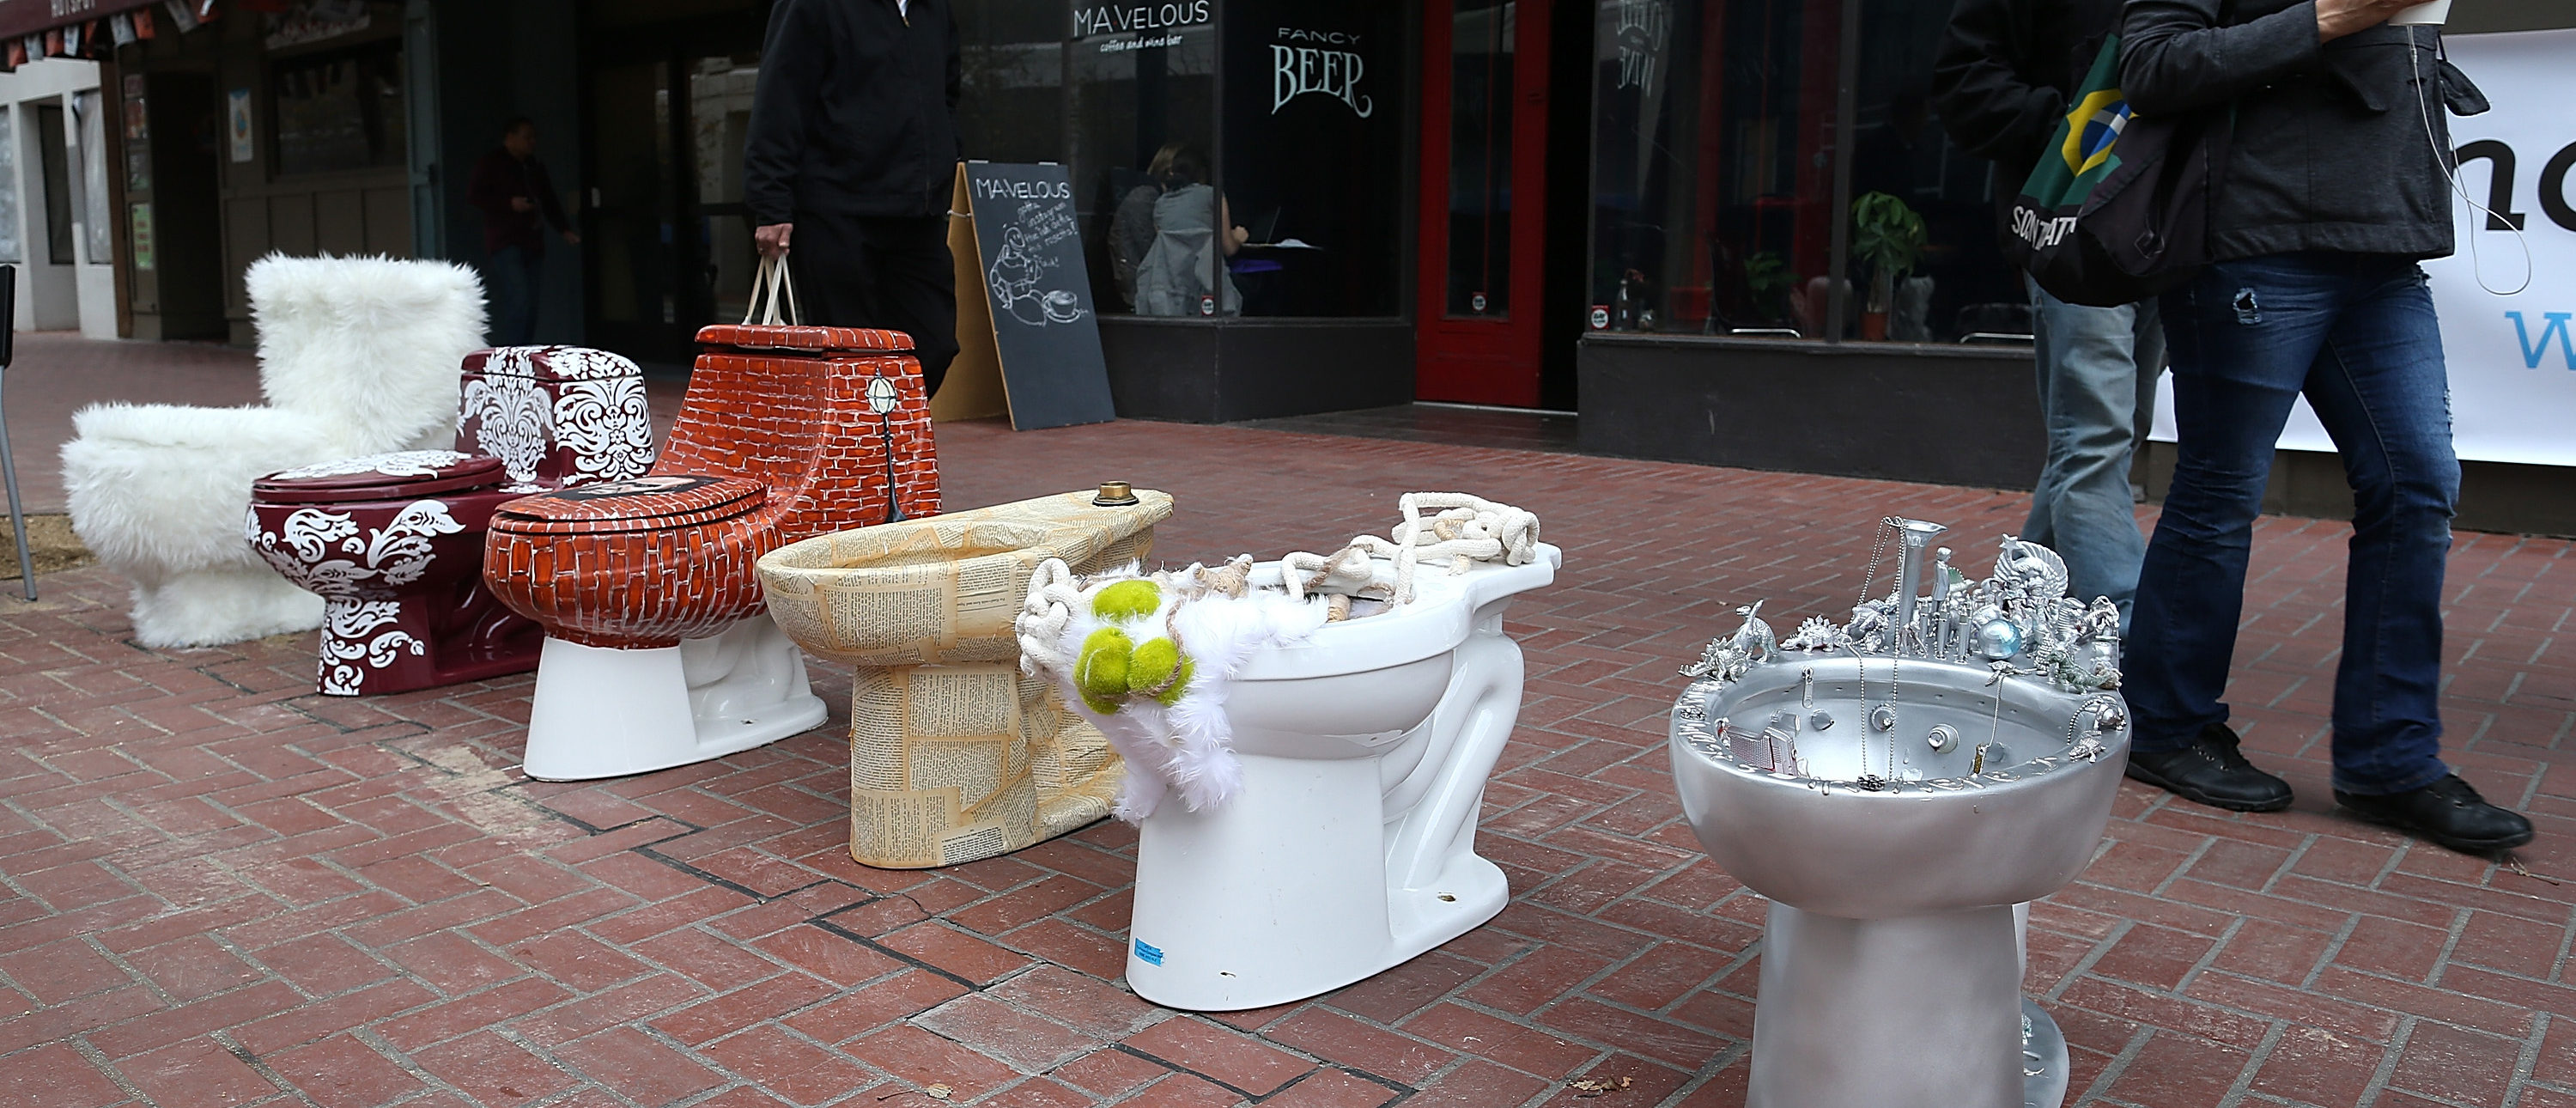 """SAN FRANCISCO, CA - NOVEMBER 21: Decorated toilets are displayed as part of a public art installation titled """"C'mon, give a shit"""" to mark World Toilet Day and to bring attention to a project to convert retired MUNI buses into mobile showers for the homeless on November 21, 2013 in San Francisco, California. Lava Mae founder Doniece Sandoval coordinated the public art installation of decorated toilets to raise awareness about the millions of people around the world who do not have access to clean and private toilets. The installation also promotes the nonprofit Lava Mae's project to convert old San Francisco municipal buses into mobile showers for homeless people in the city. (Photo by Justin Sullivan/Getty Images)"""